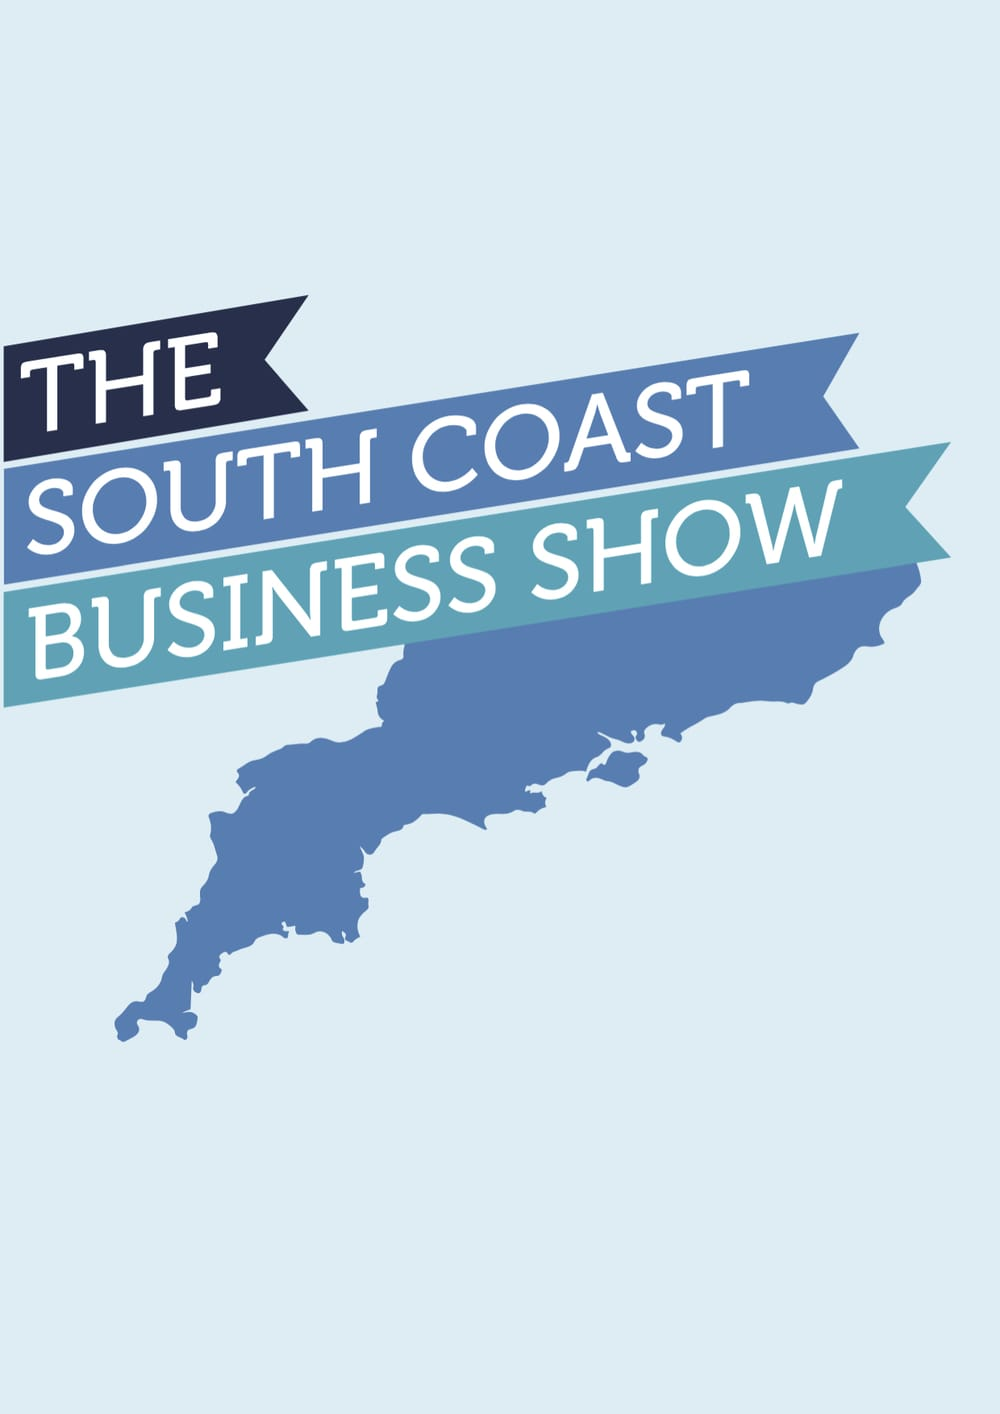 South+Coast+Business+Show.jpg